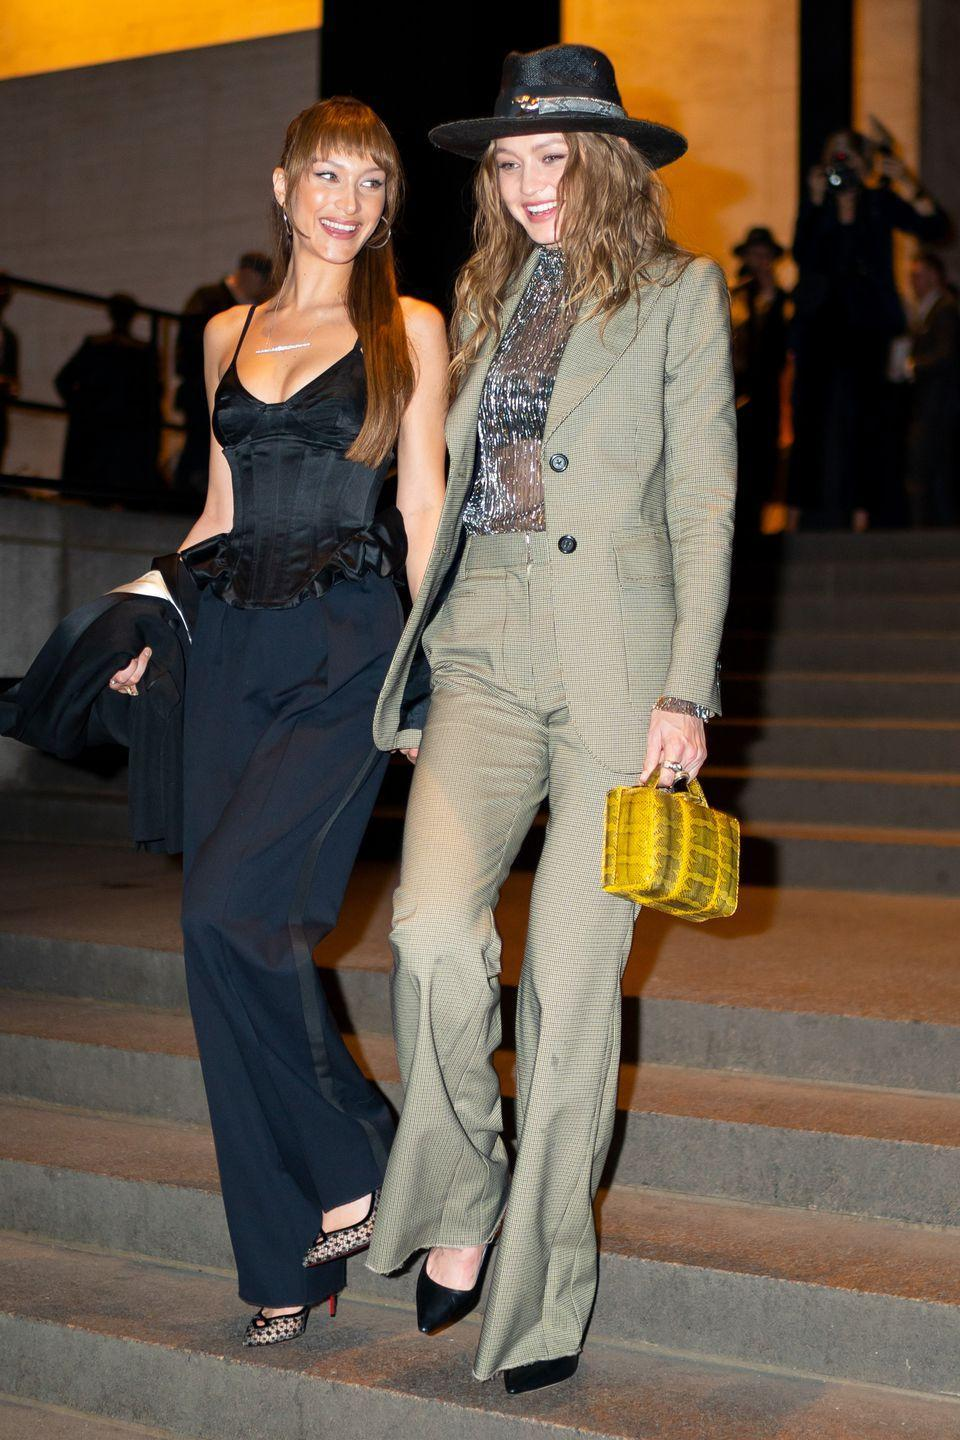 """<p>Both models <a href=""""https://www.harpersbazaar.com/celebrity/latest/a27066103/gigi-hadid-bella-hadid-marc-jacobs-wedding-guests/"""" rel=""""nofollow noopener"""" target=""""_blank"""" data-ylk=""""slk:wore suits"""" class=""""link rapid-noclick-resp"""">wore suits</a> to the nuptials. Gigi's hat is by <a href=""""https://www.yousseflahlou.com/"""" rel=""""nofollow noopener"""" target=""""_blank"""" data-ylk=""""slk:Youssef Lahlou"""" class=""""link rapid-noclick-resp"""">Youssef Lahlou</a>. Bella's earrings are <a href=""""https://vitafede.com/products/eclipse-hoop-earrings-1-7?variant=9449654648879"""" rel=""""nofollow noopener"""" target=""""_blank"""" data-ylk=""""slk:Vita Fede Eclipse hoops"""" class=""""link rapid-noclick-resp"""">Vita Fede Eclipse hoops</a>.</p>"""